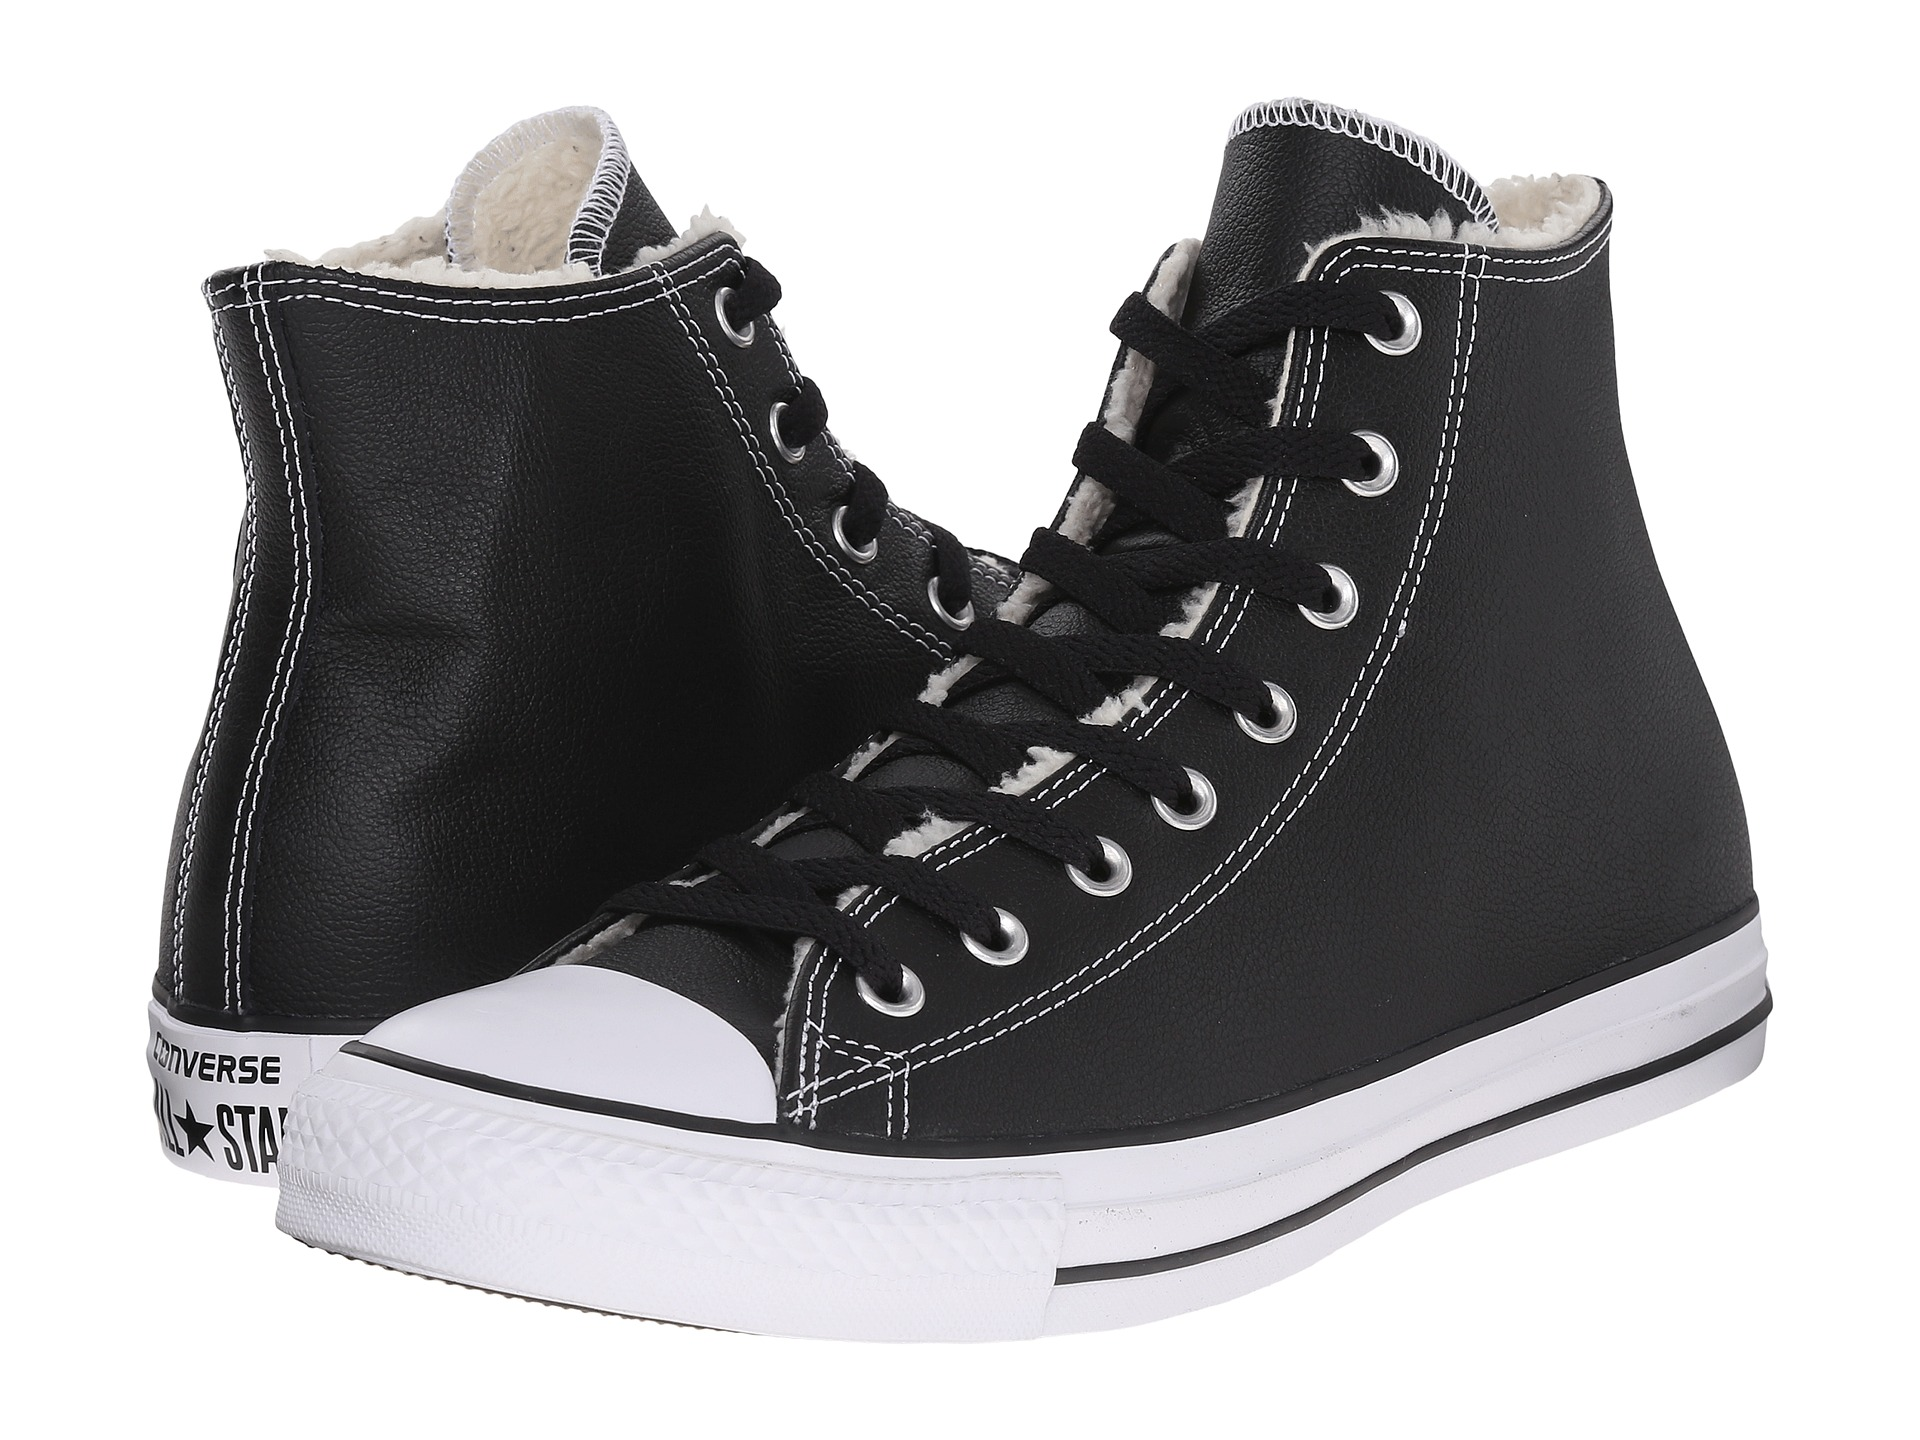 Converse All Star Chuck Taylor Black Leather Shearling High